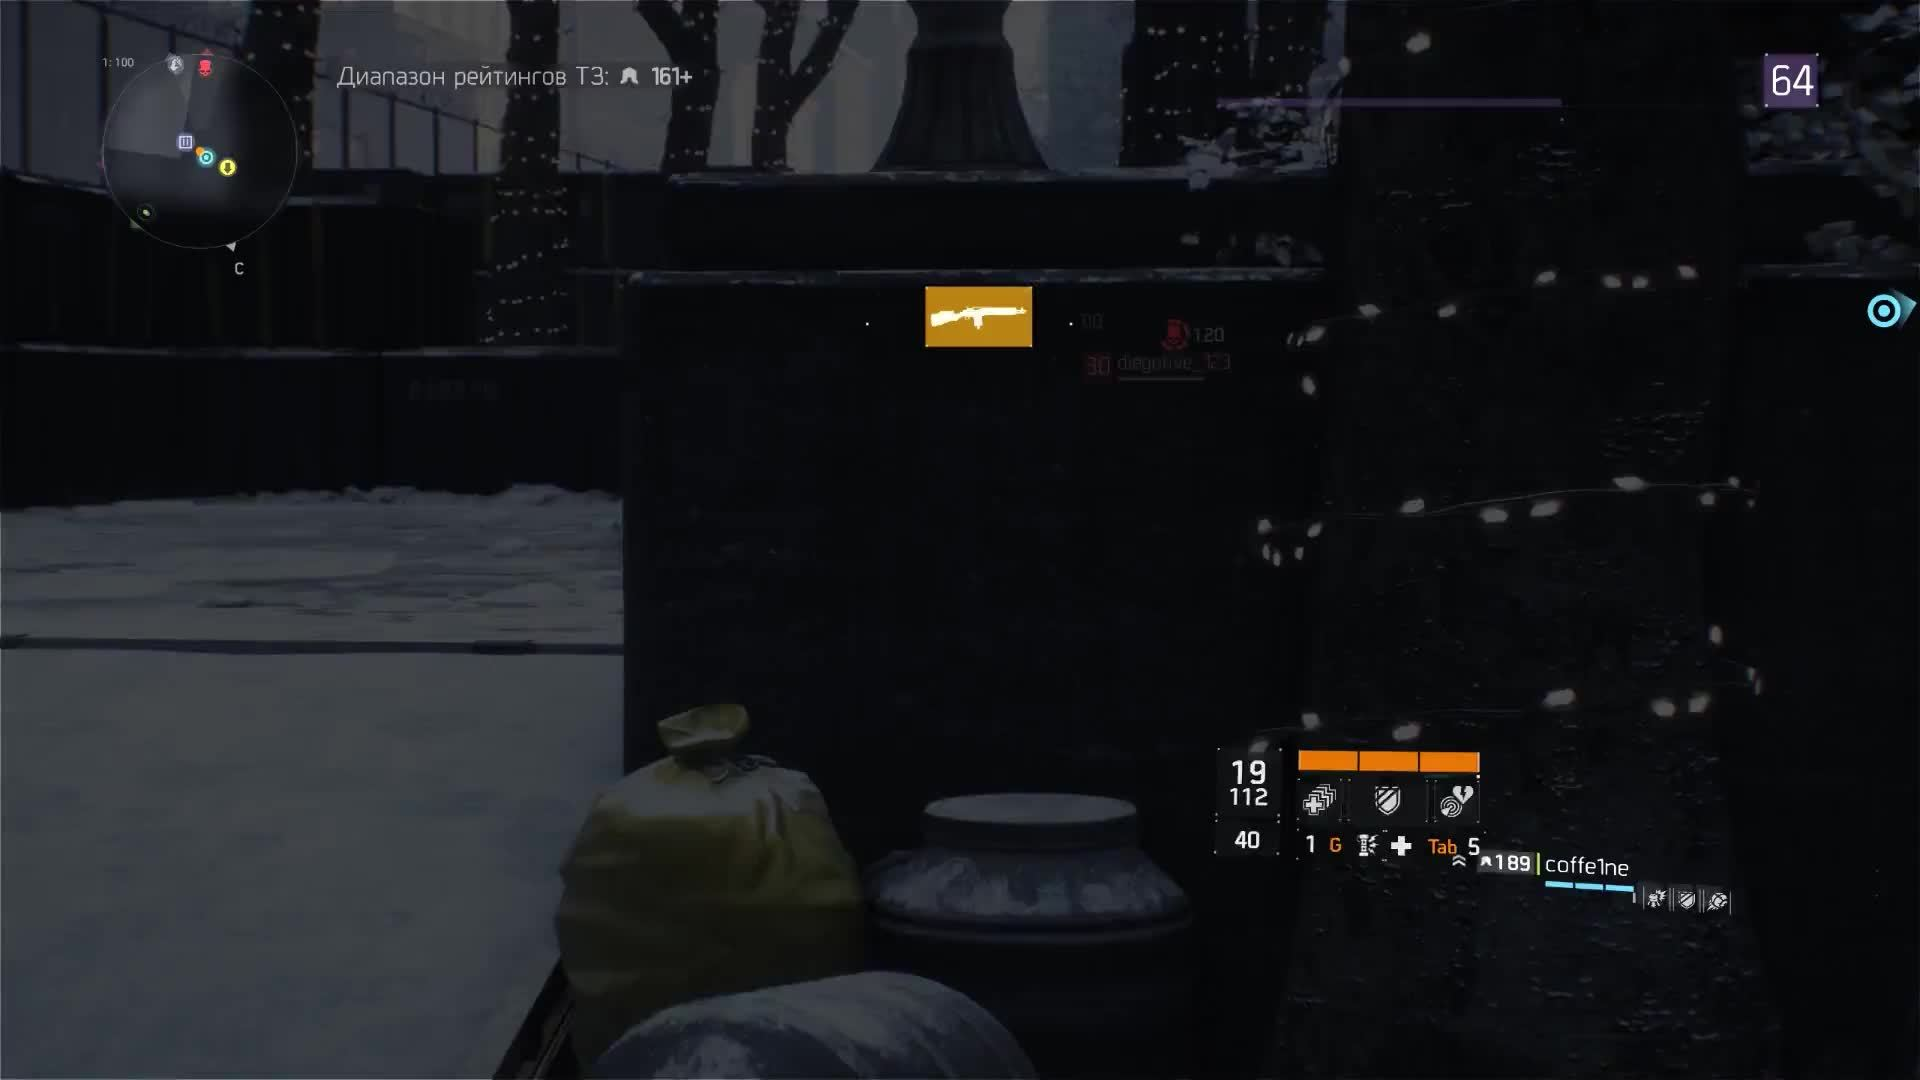 thedivision, Cheater or not GIFs